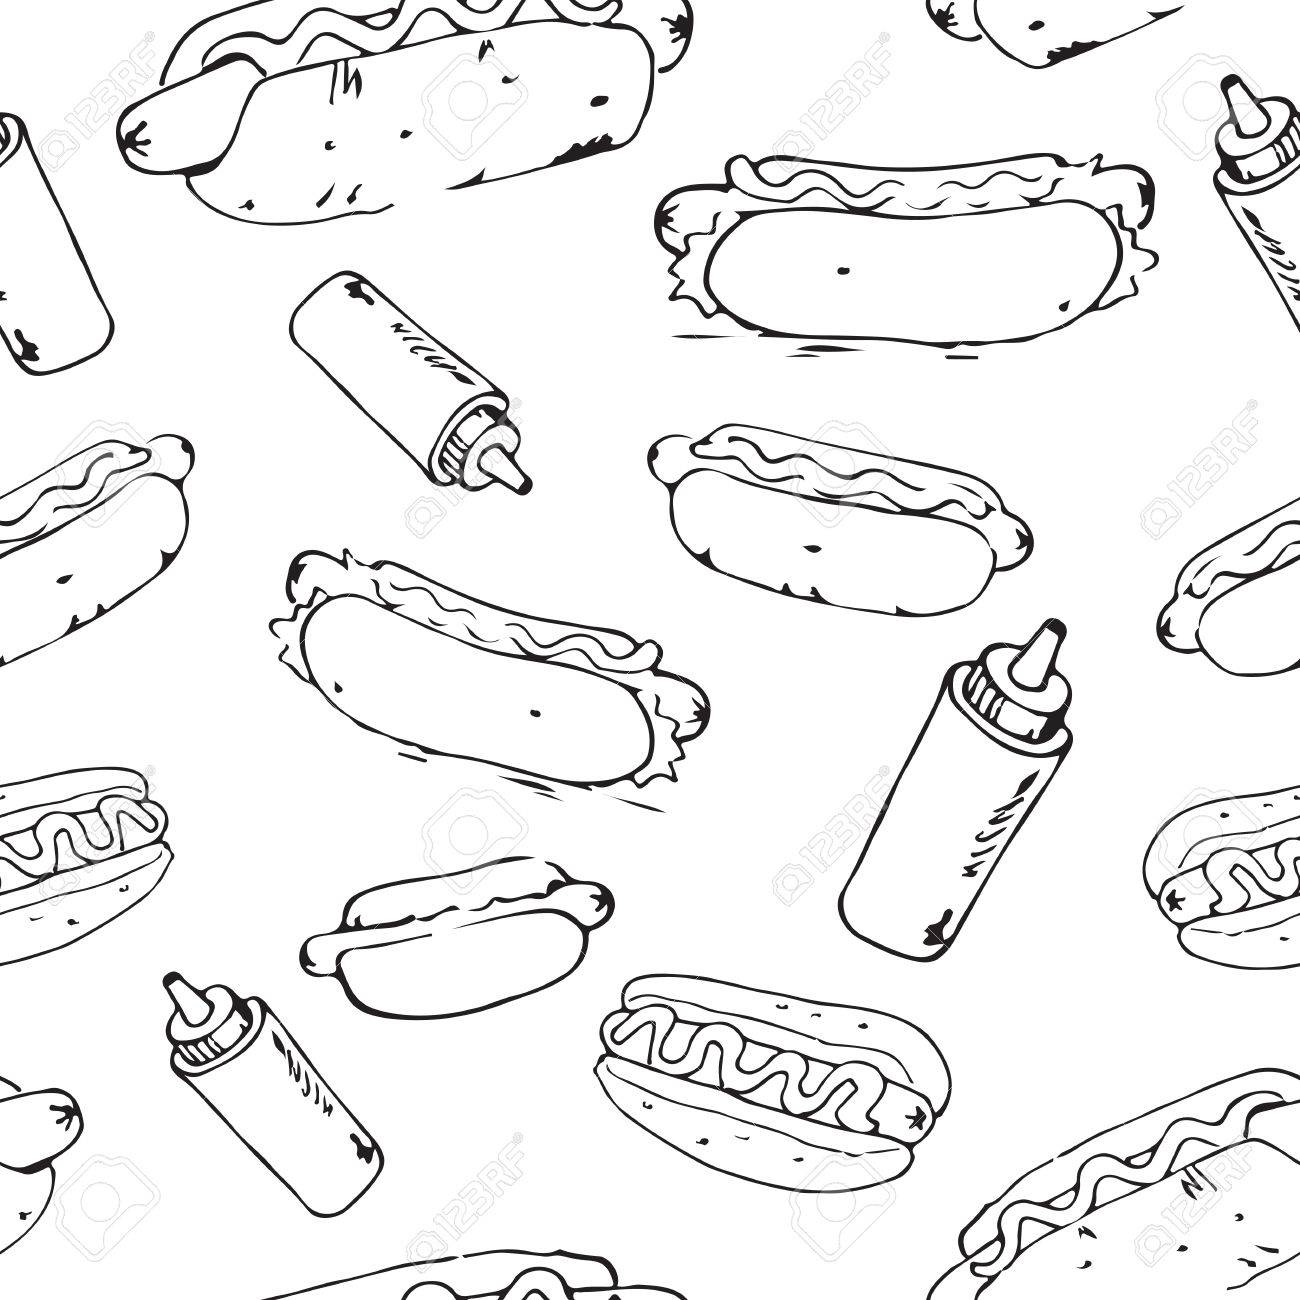 1300x1300 Hot Dog Hand Drawn Seamless Pattern. Fast Food Design Element